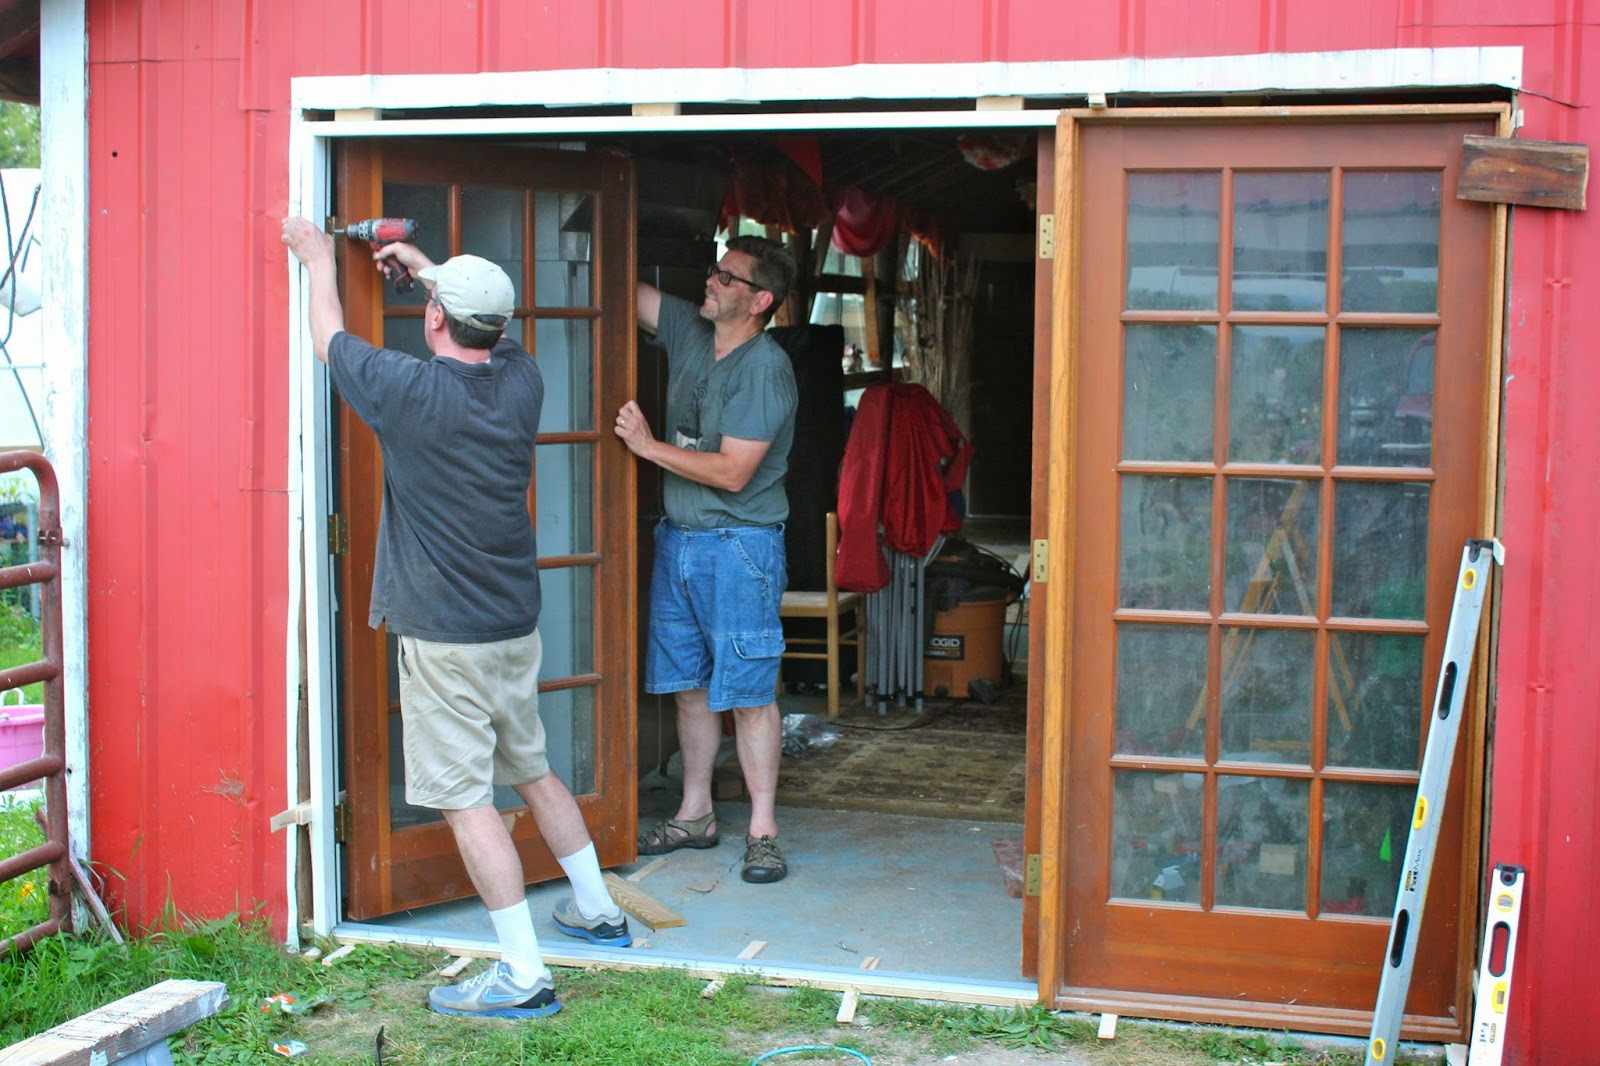 Squash Blossom Farm: Our Barn Doors are More Open!